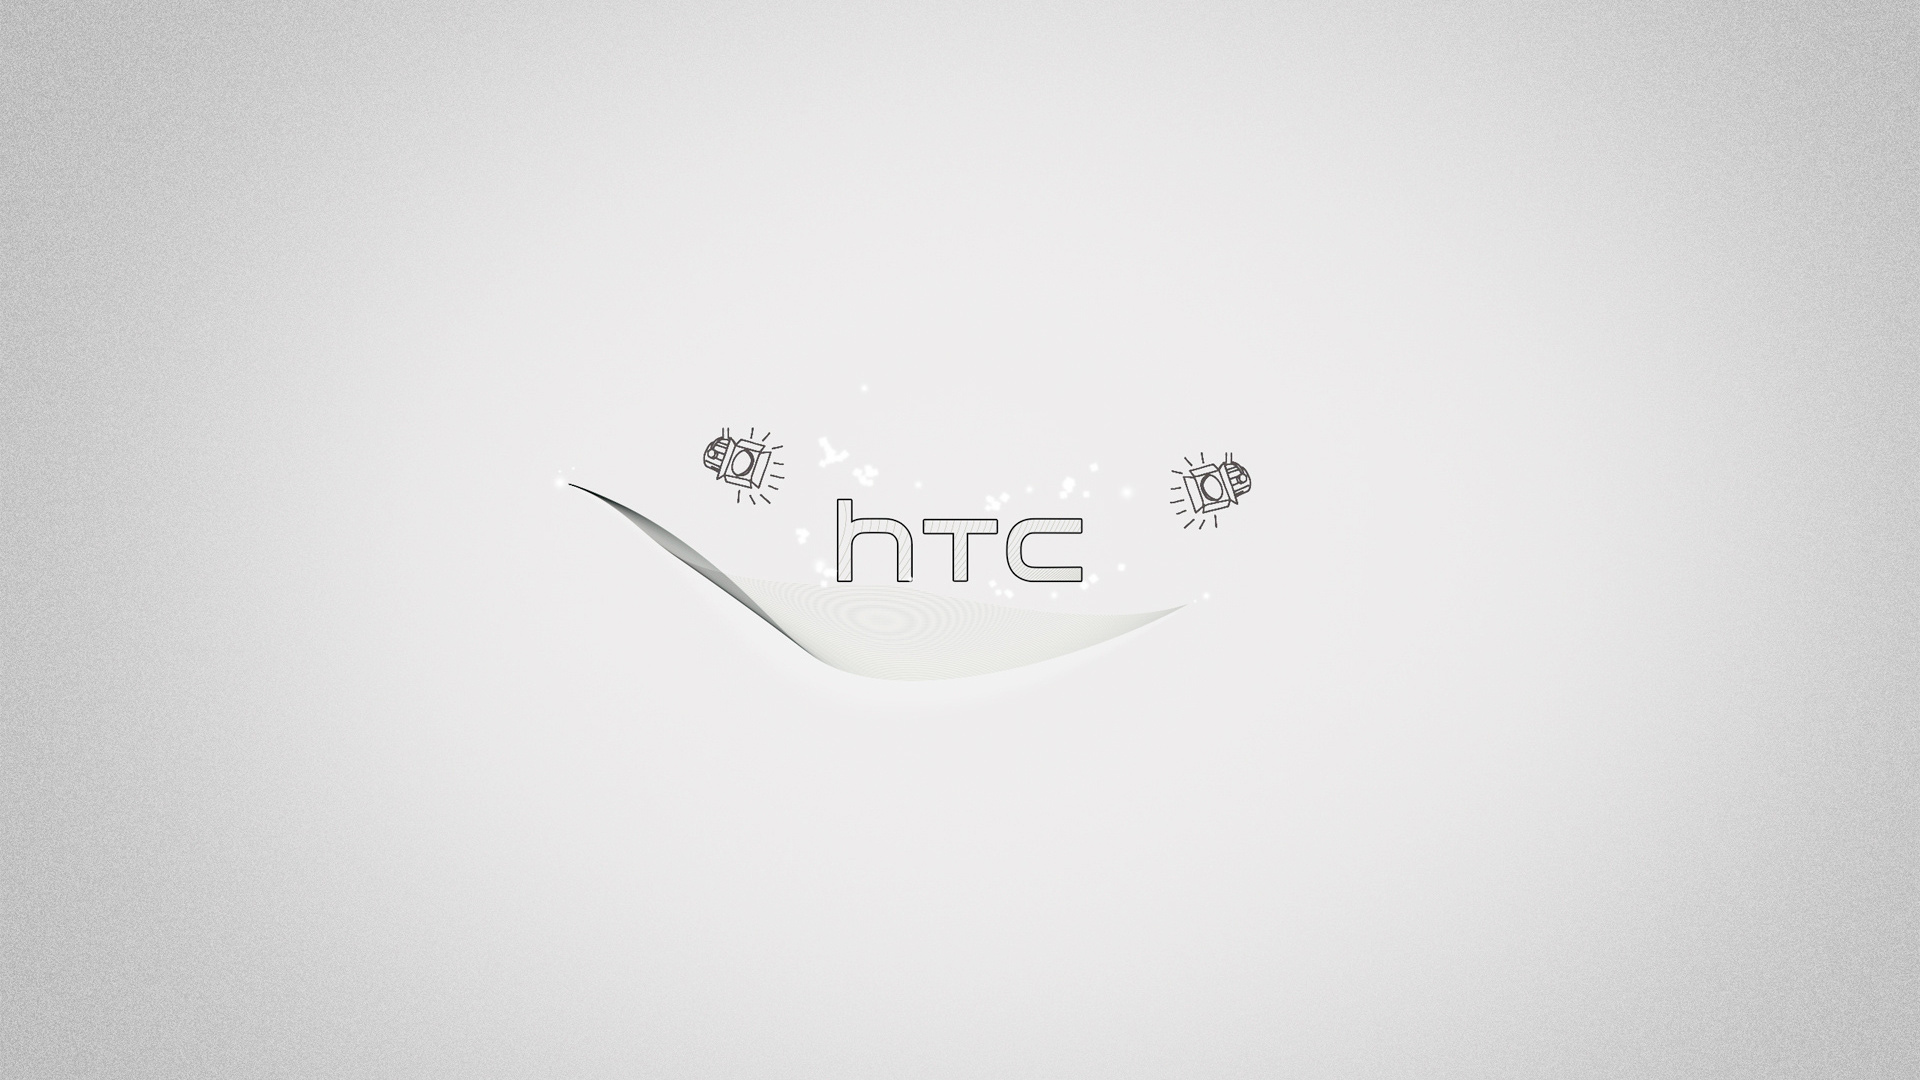 ... обои HTC logo, Логотип компании HTC: www.fullhdoboi.ru/photo/computer/htc_logo/17-0-6961